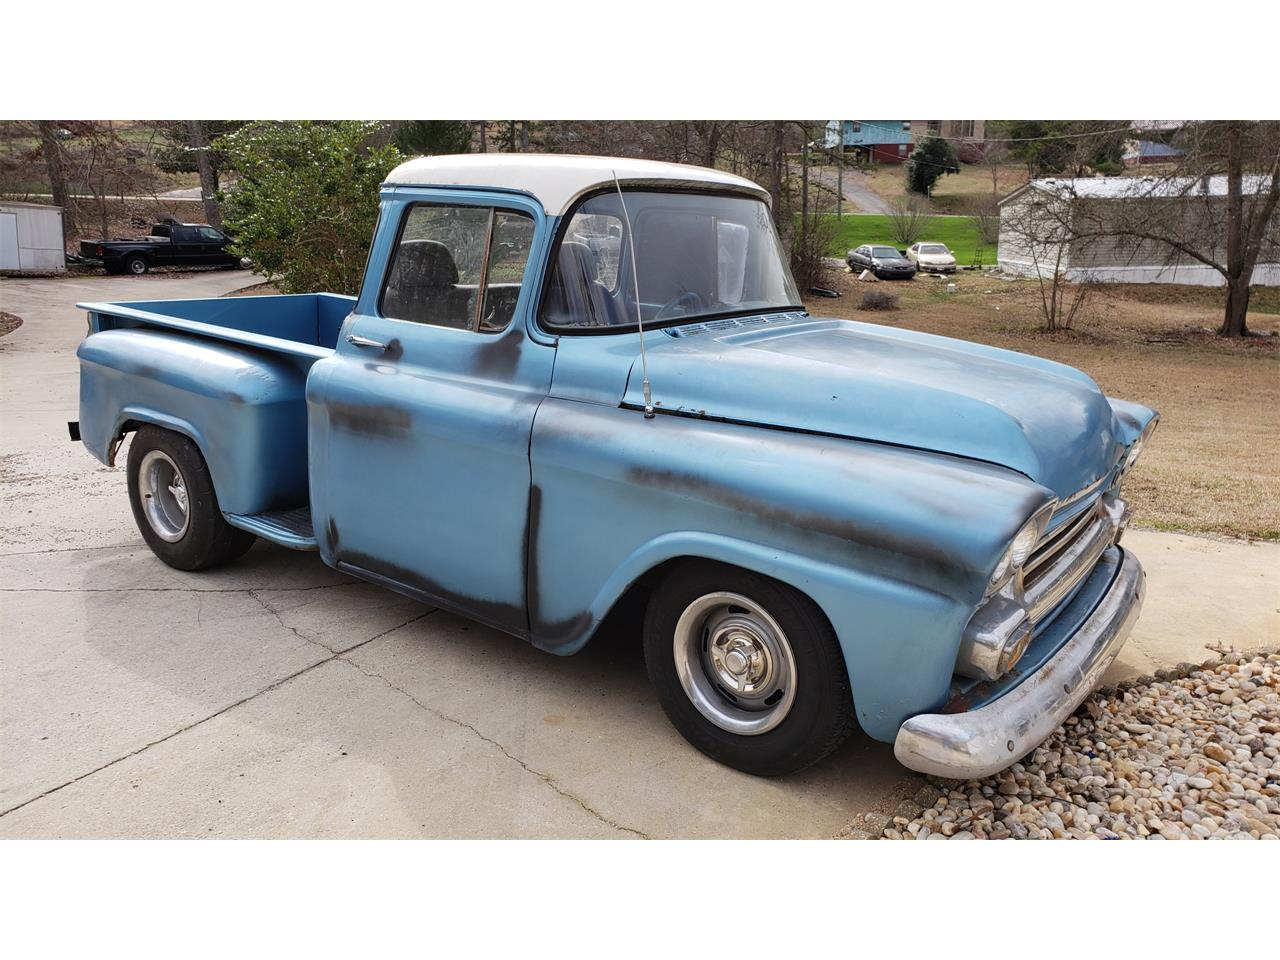 1958 Chevy Apache For Sale >> 1958 Chevrolet Apache For Sale Classiccars Com Cc 1183547